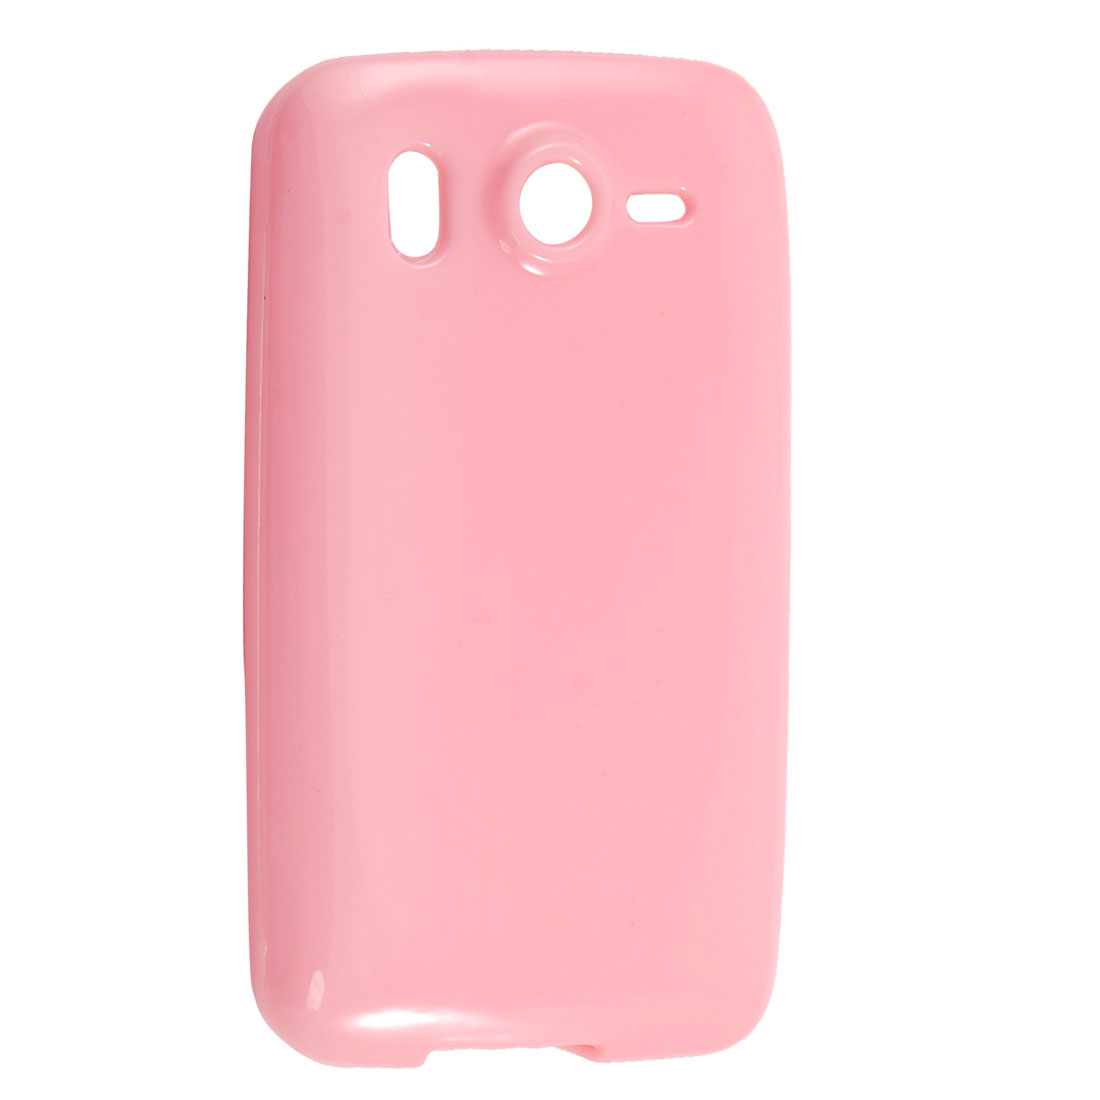 Smooth Soft Pink Plastic Protector Case Cover for HTC Desire HD G10